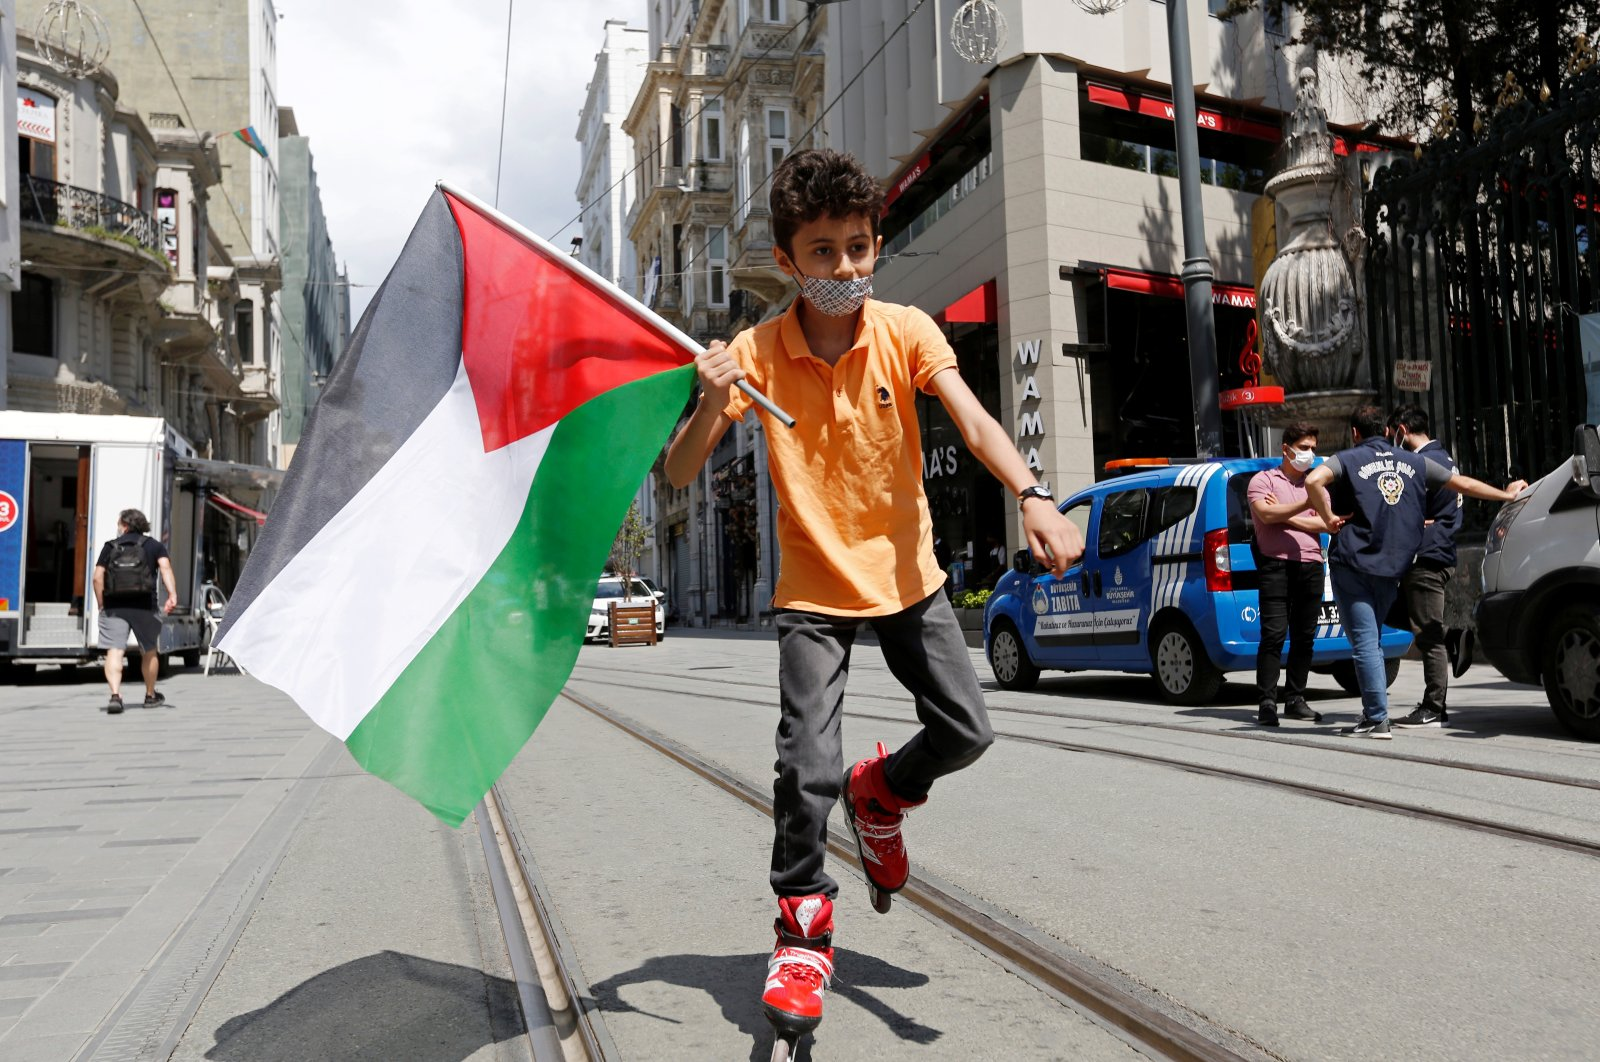 A boy holding a Palestinian flag roller skates in central Istanbul, Turkey, May 16, 2021. (Reuters Photo)